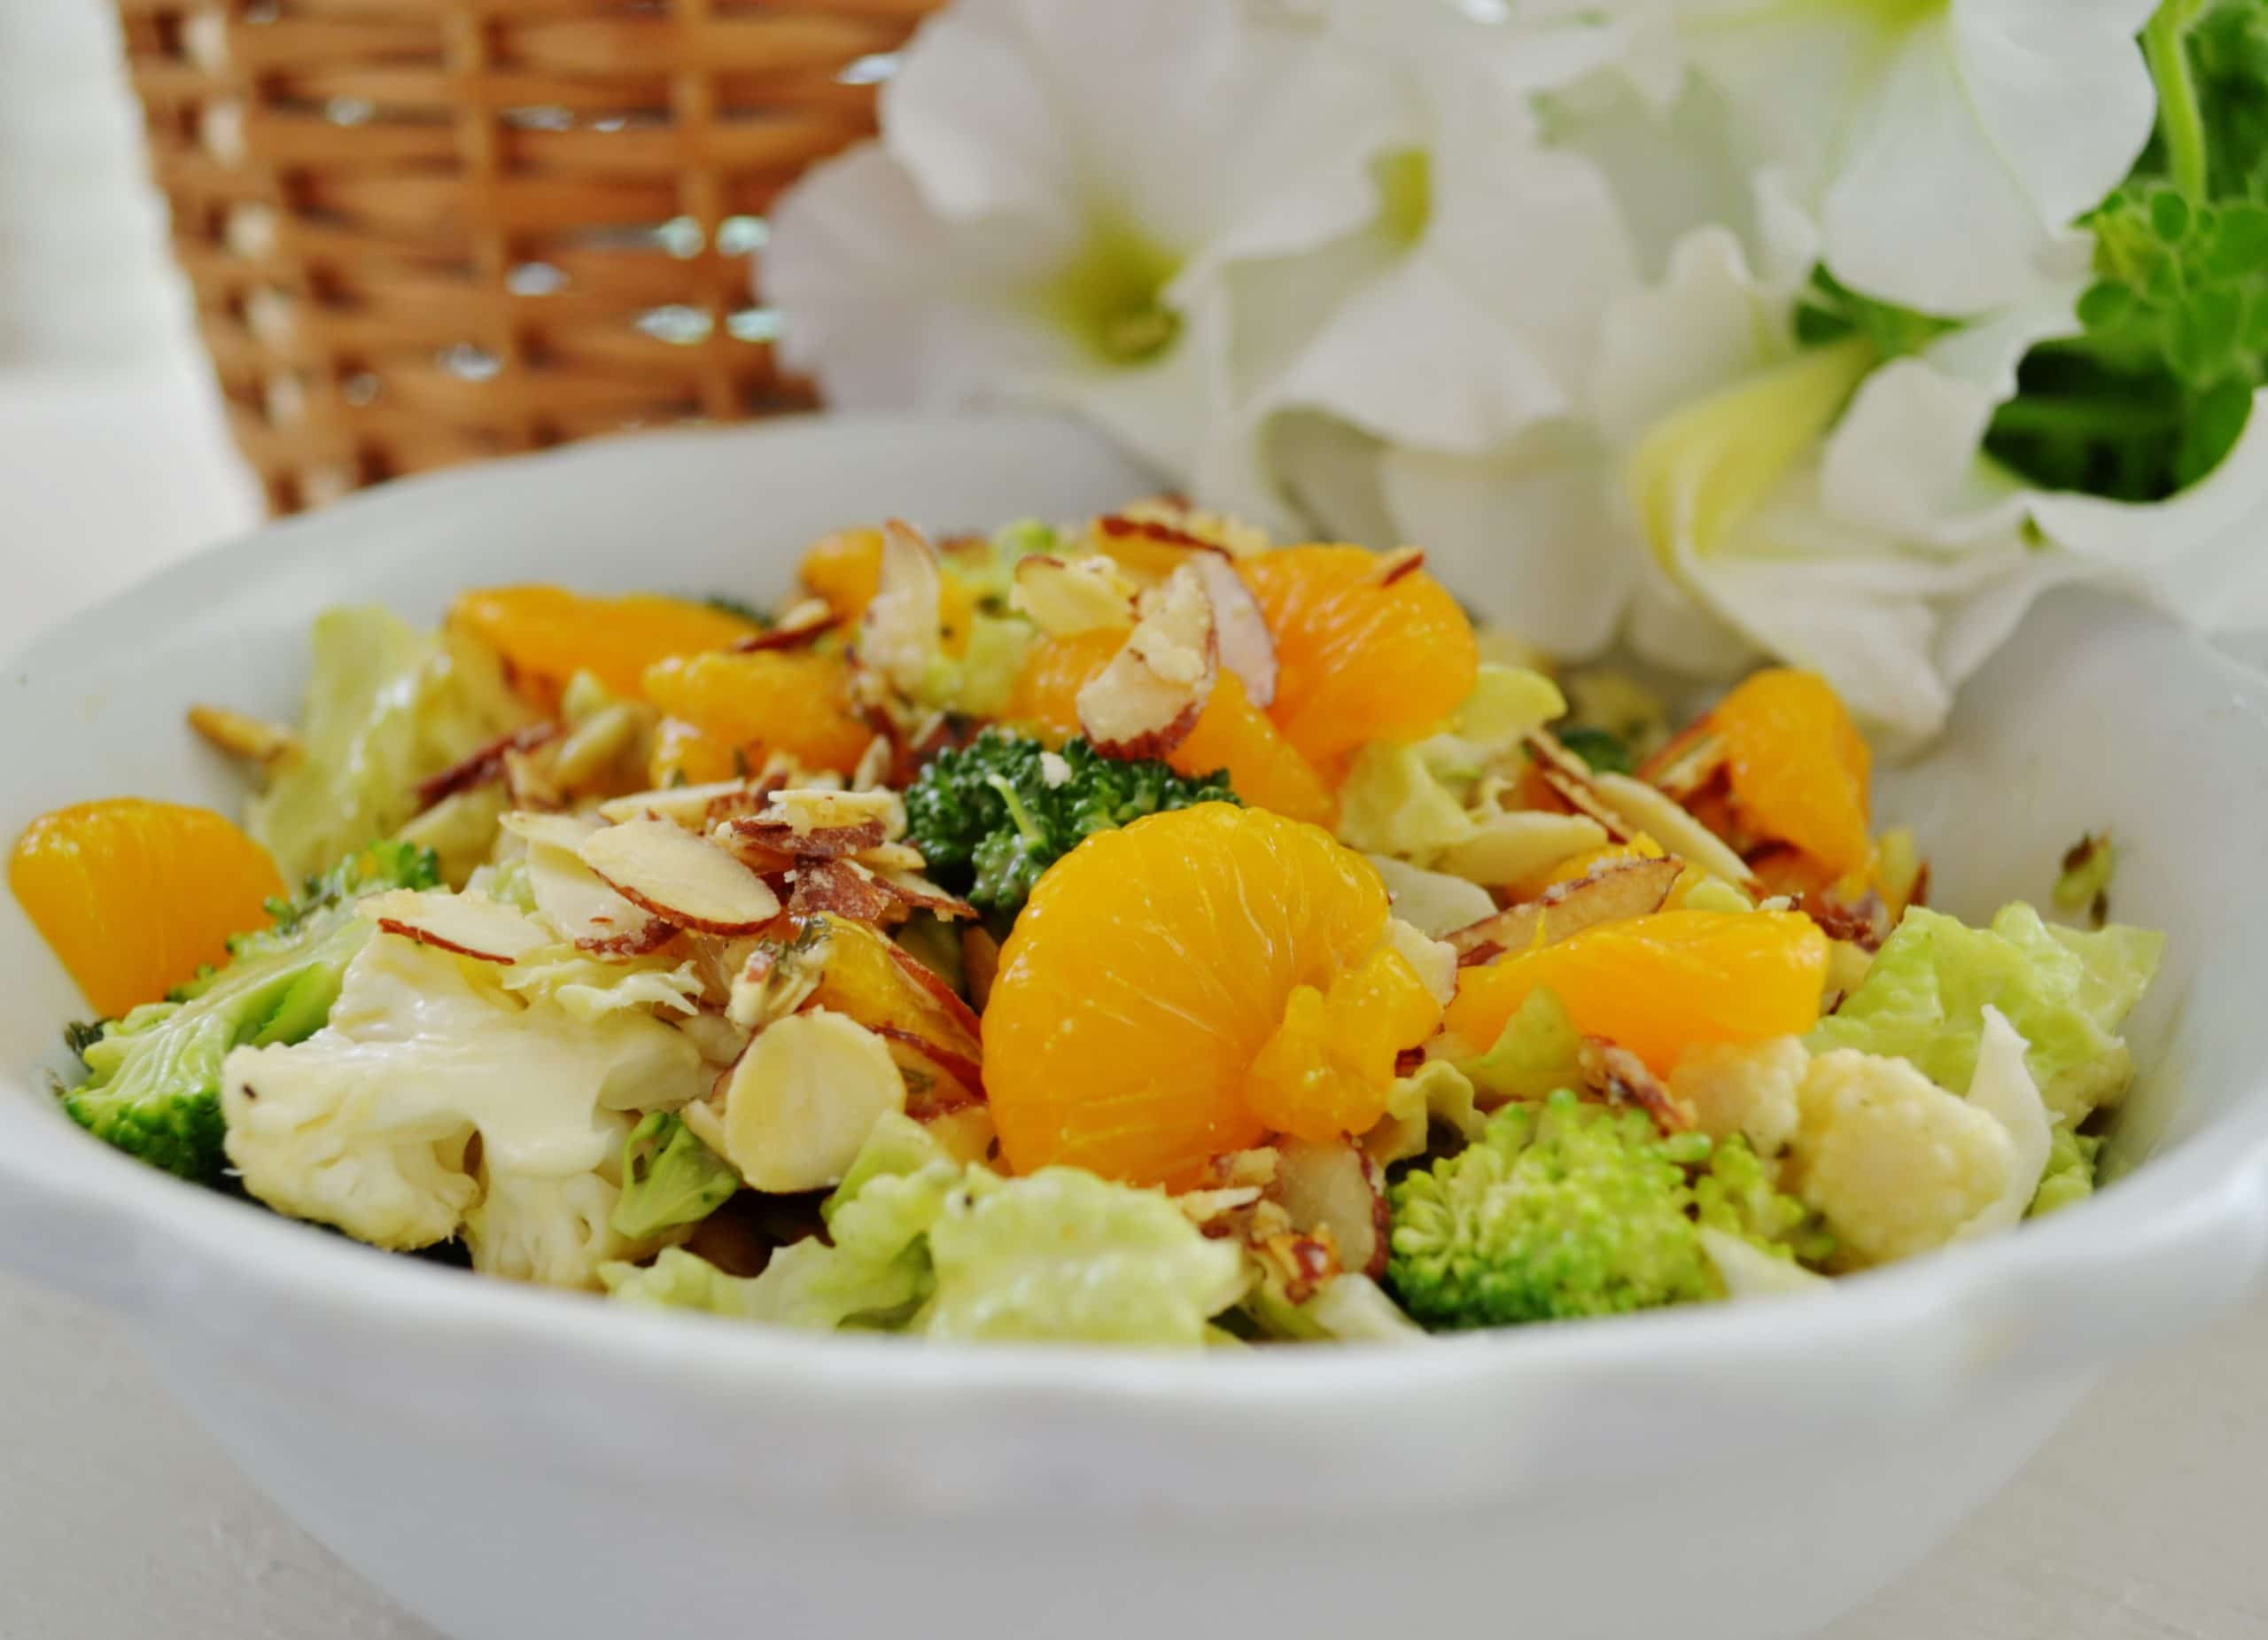 Nappa Broccoli Cauliflower Salad